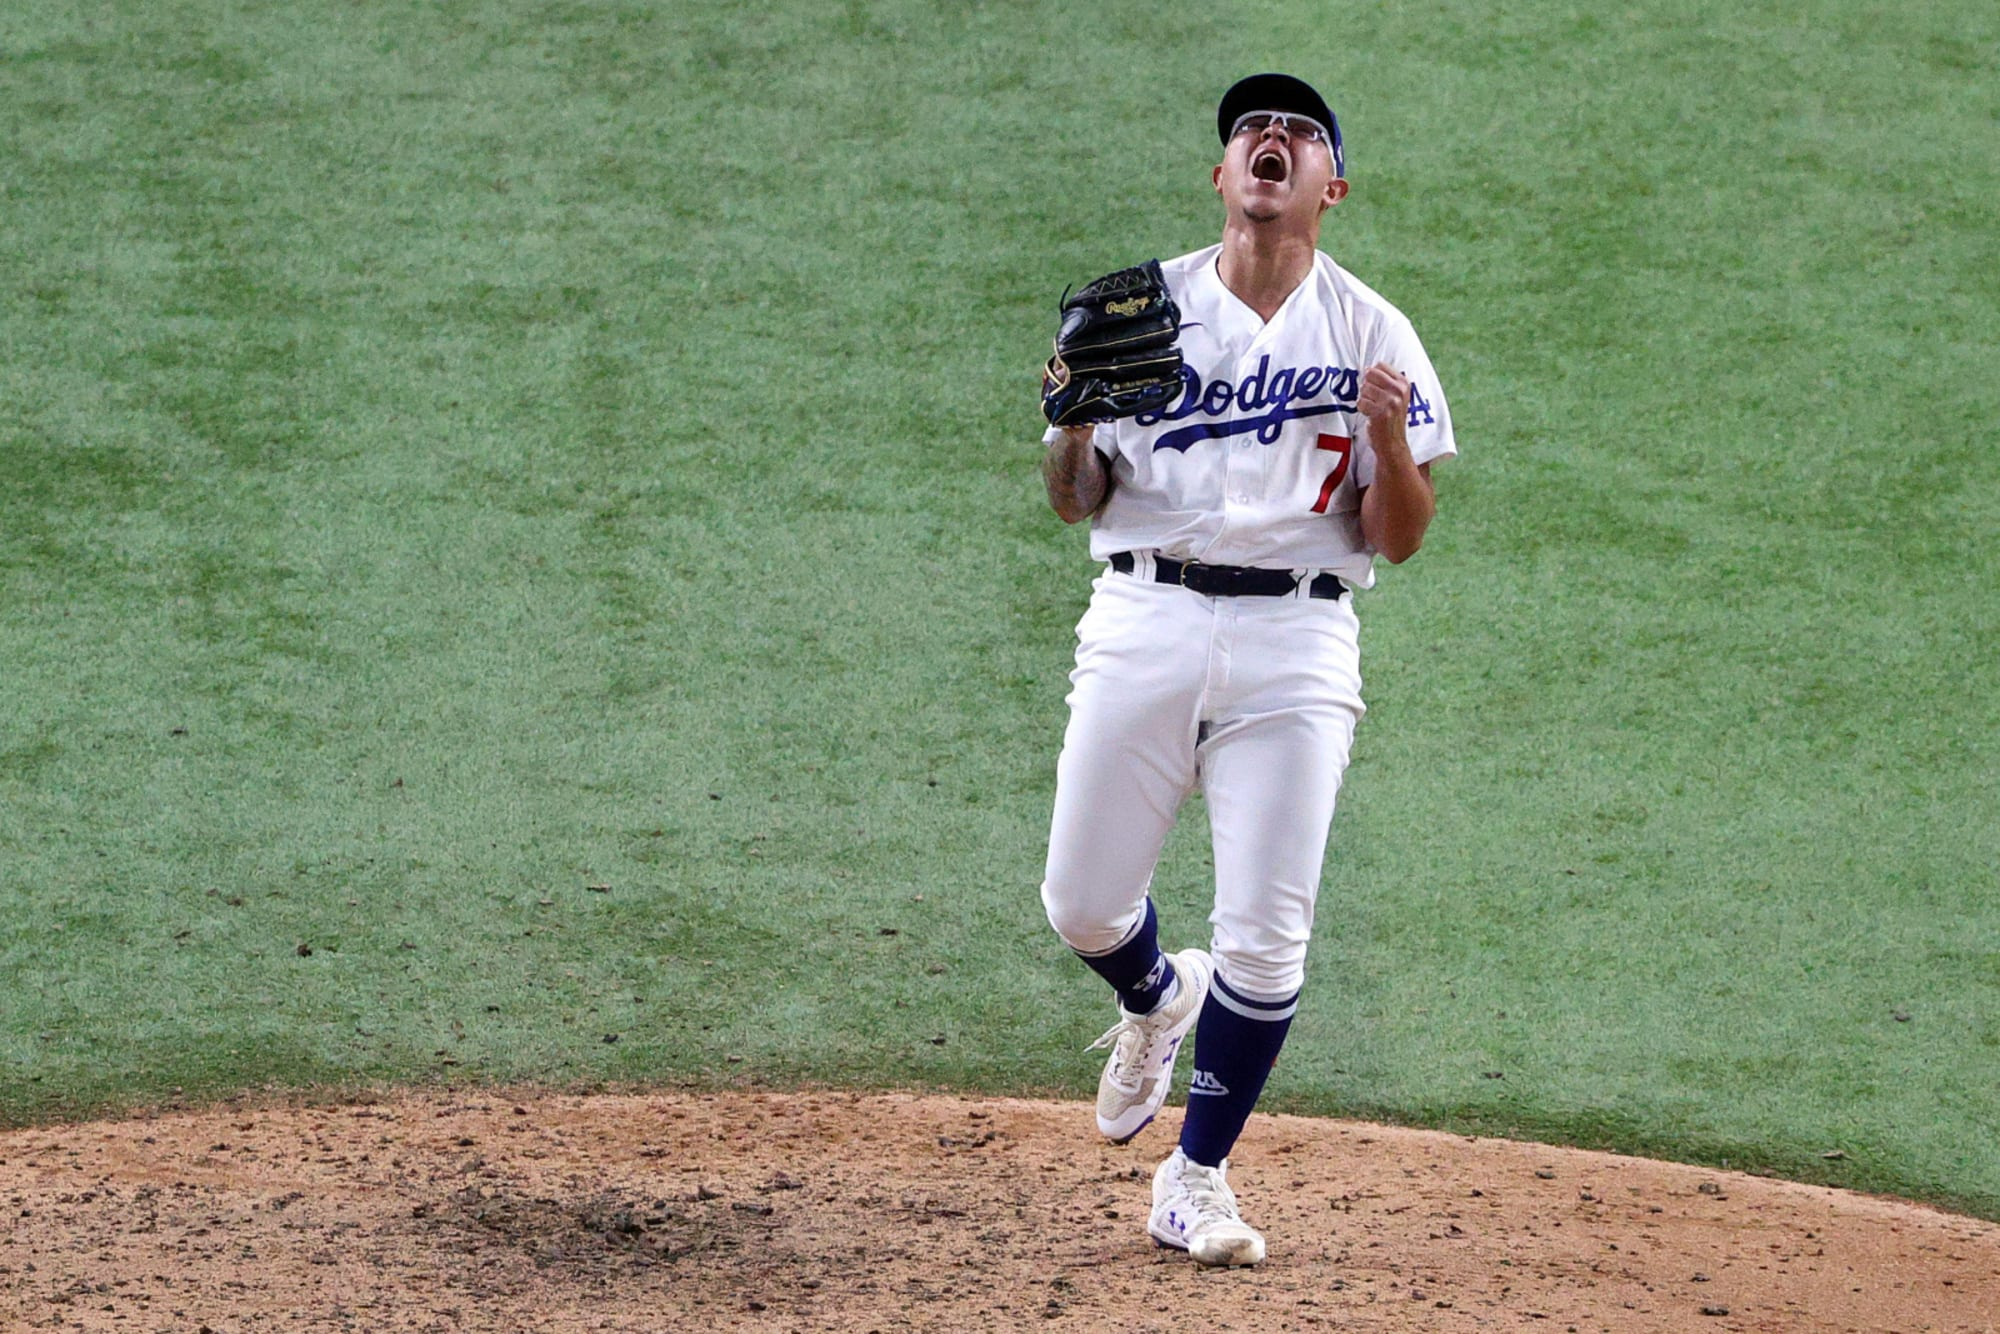 Los Angeles Dodgers: Julio Urias' potential fully shown this postseason